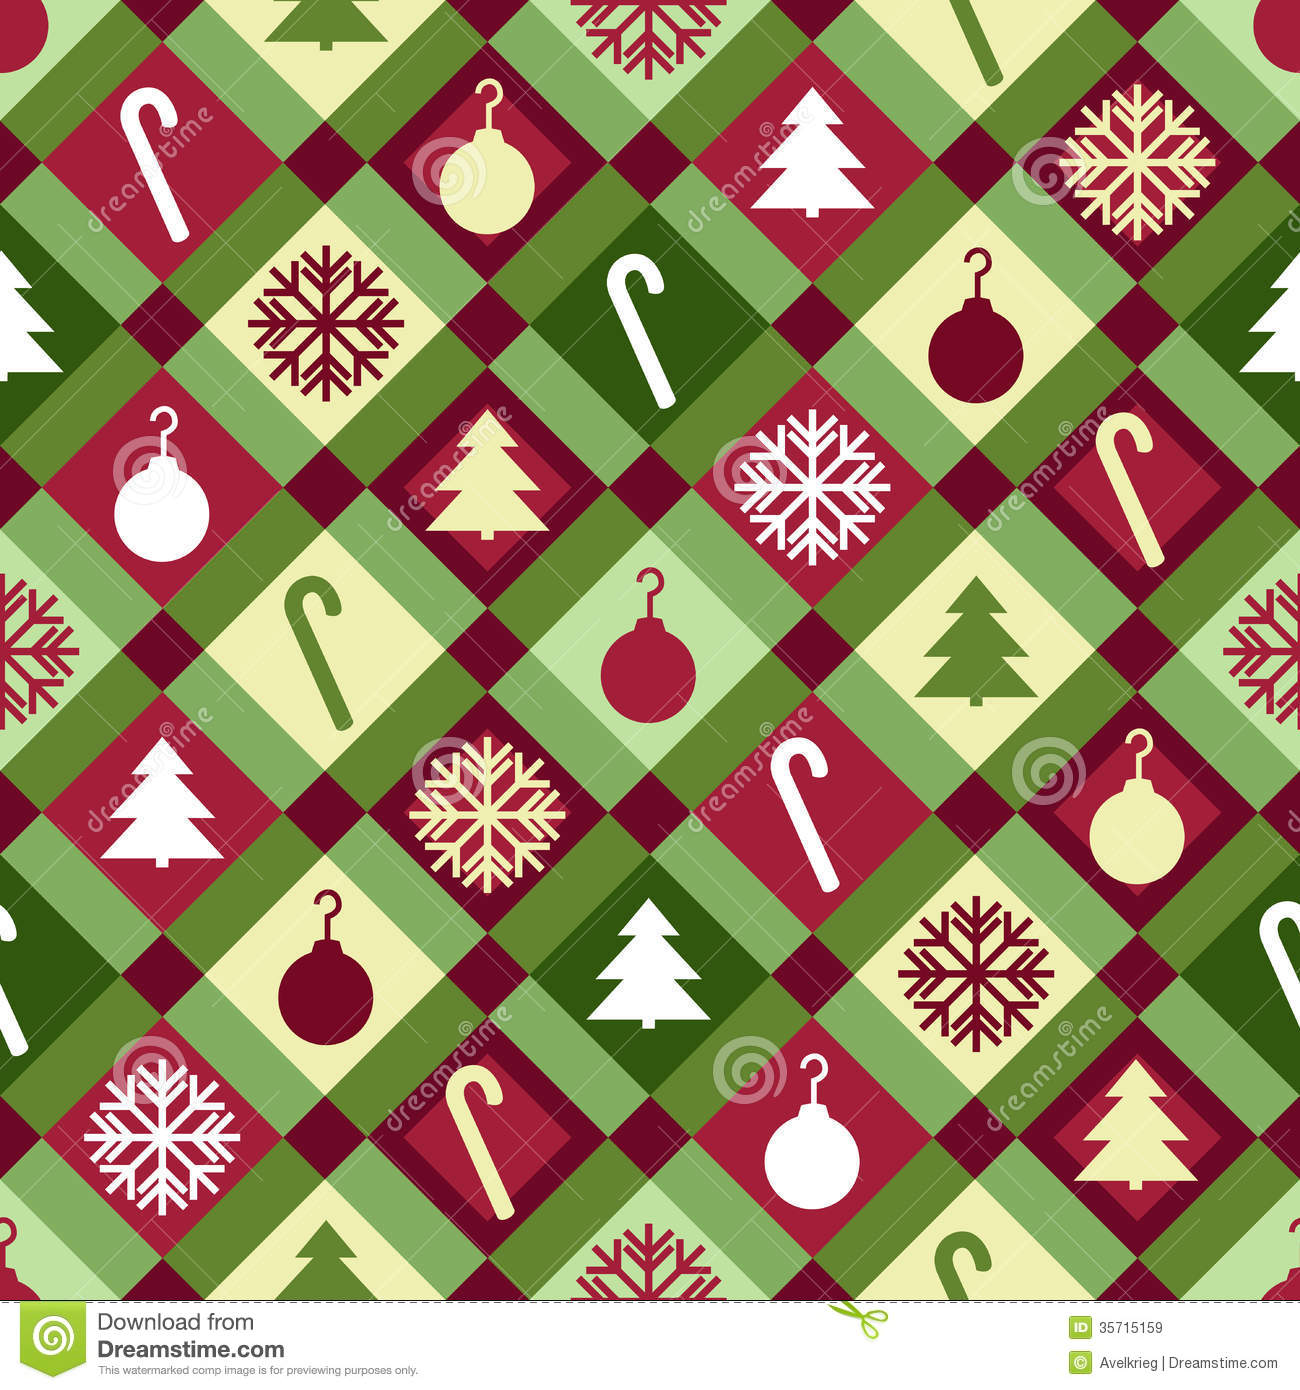 red, green and yellow Christmas quilt pattern. Seamlessly repeatable ...